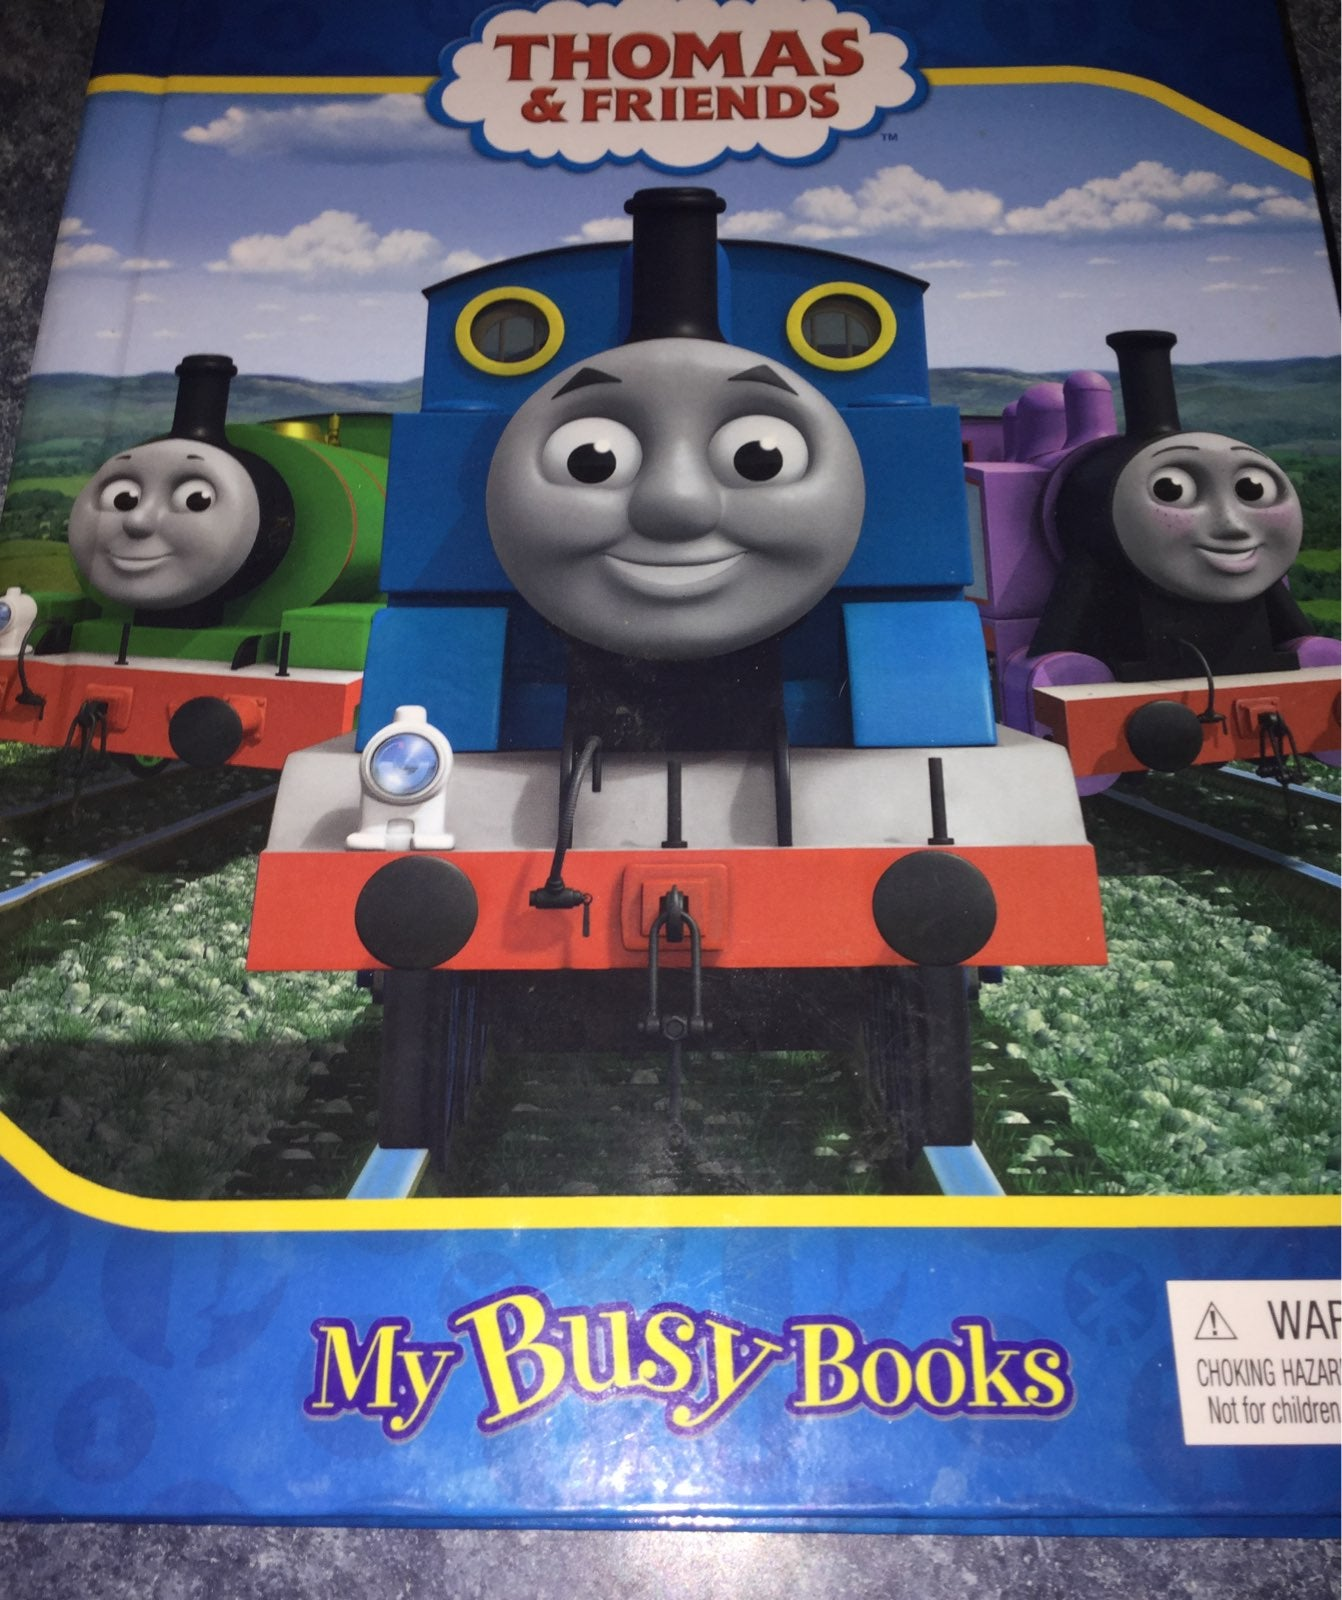 Thomas & friends busy book